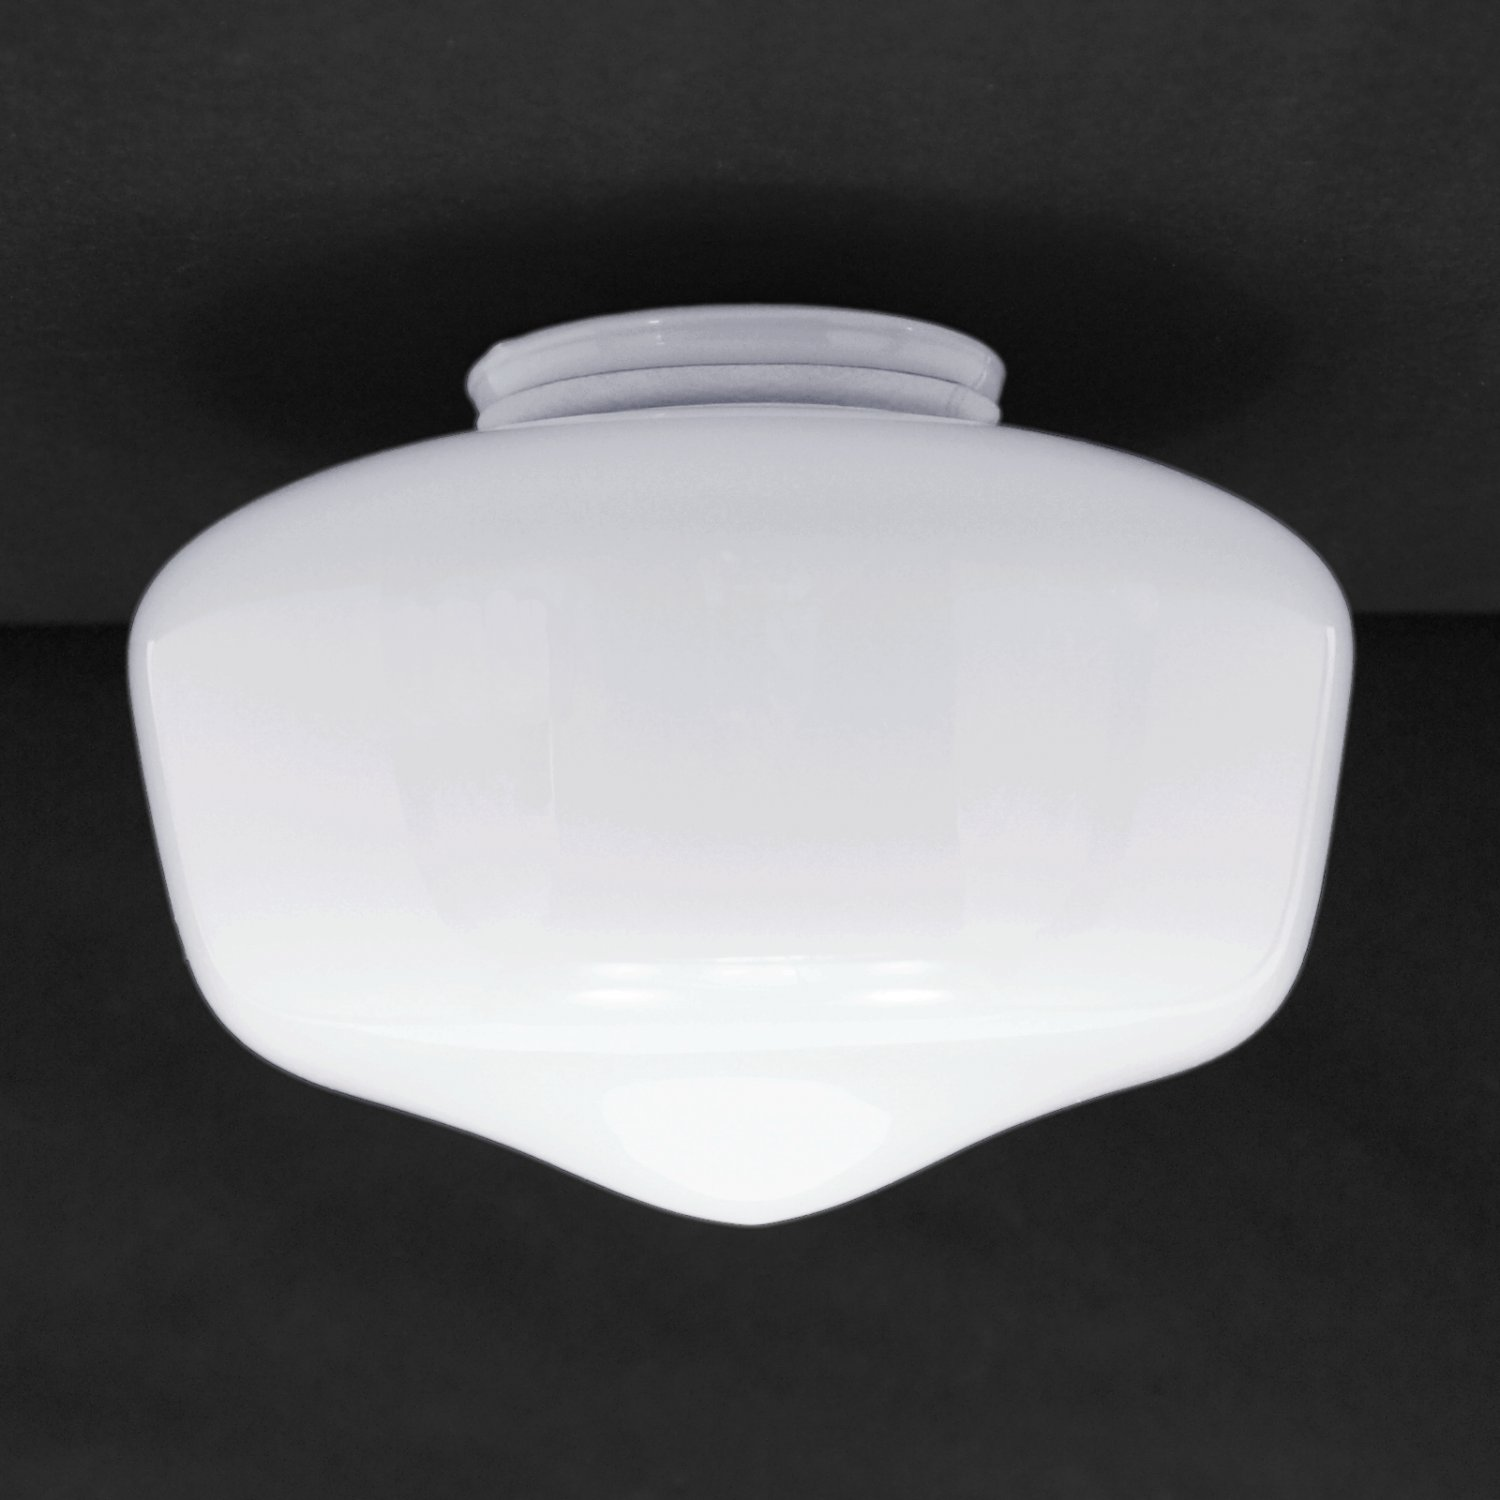 School house globe 7 white glass shade for ceiling fan light kits school house globe 7 white glass shade for ceiling fan light kits with 325 fitter 236 g10 mozeypictures Images